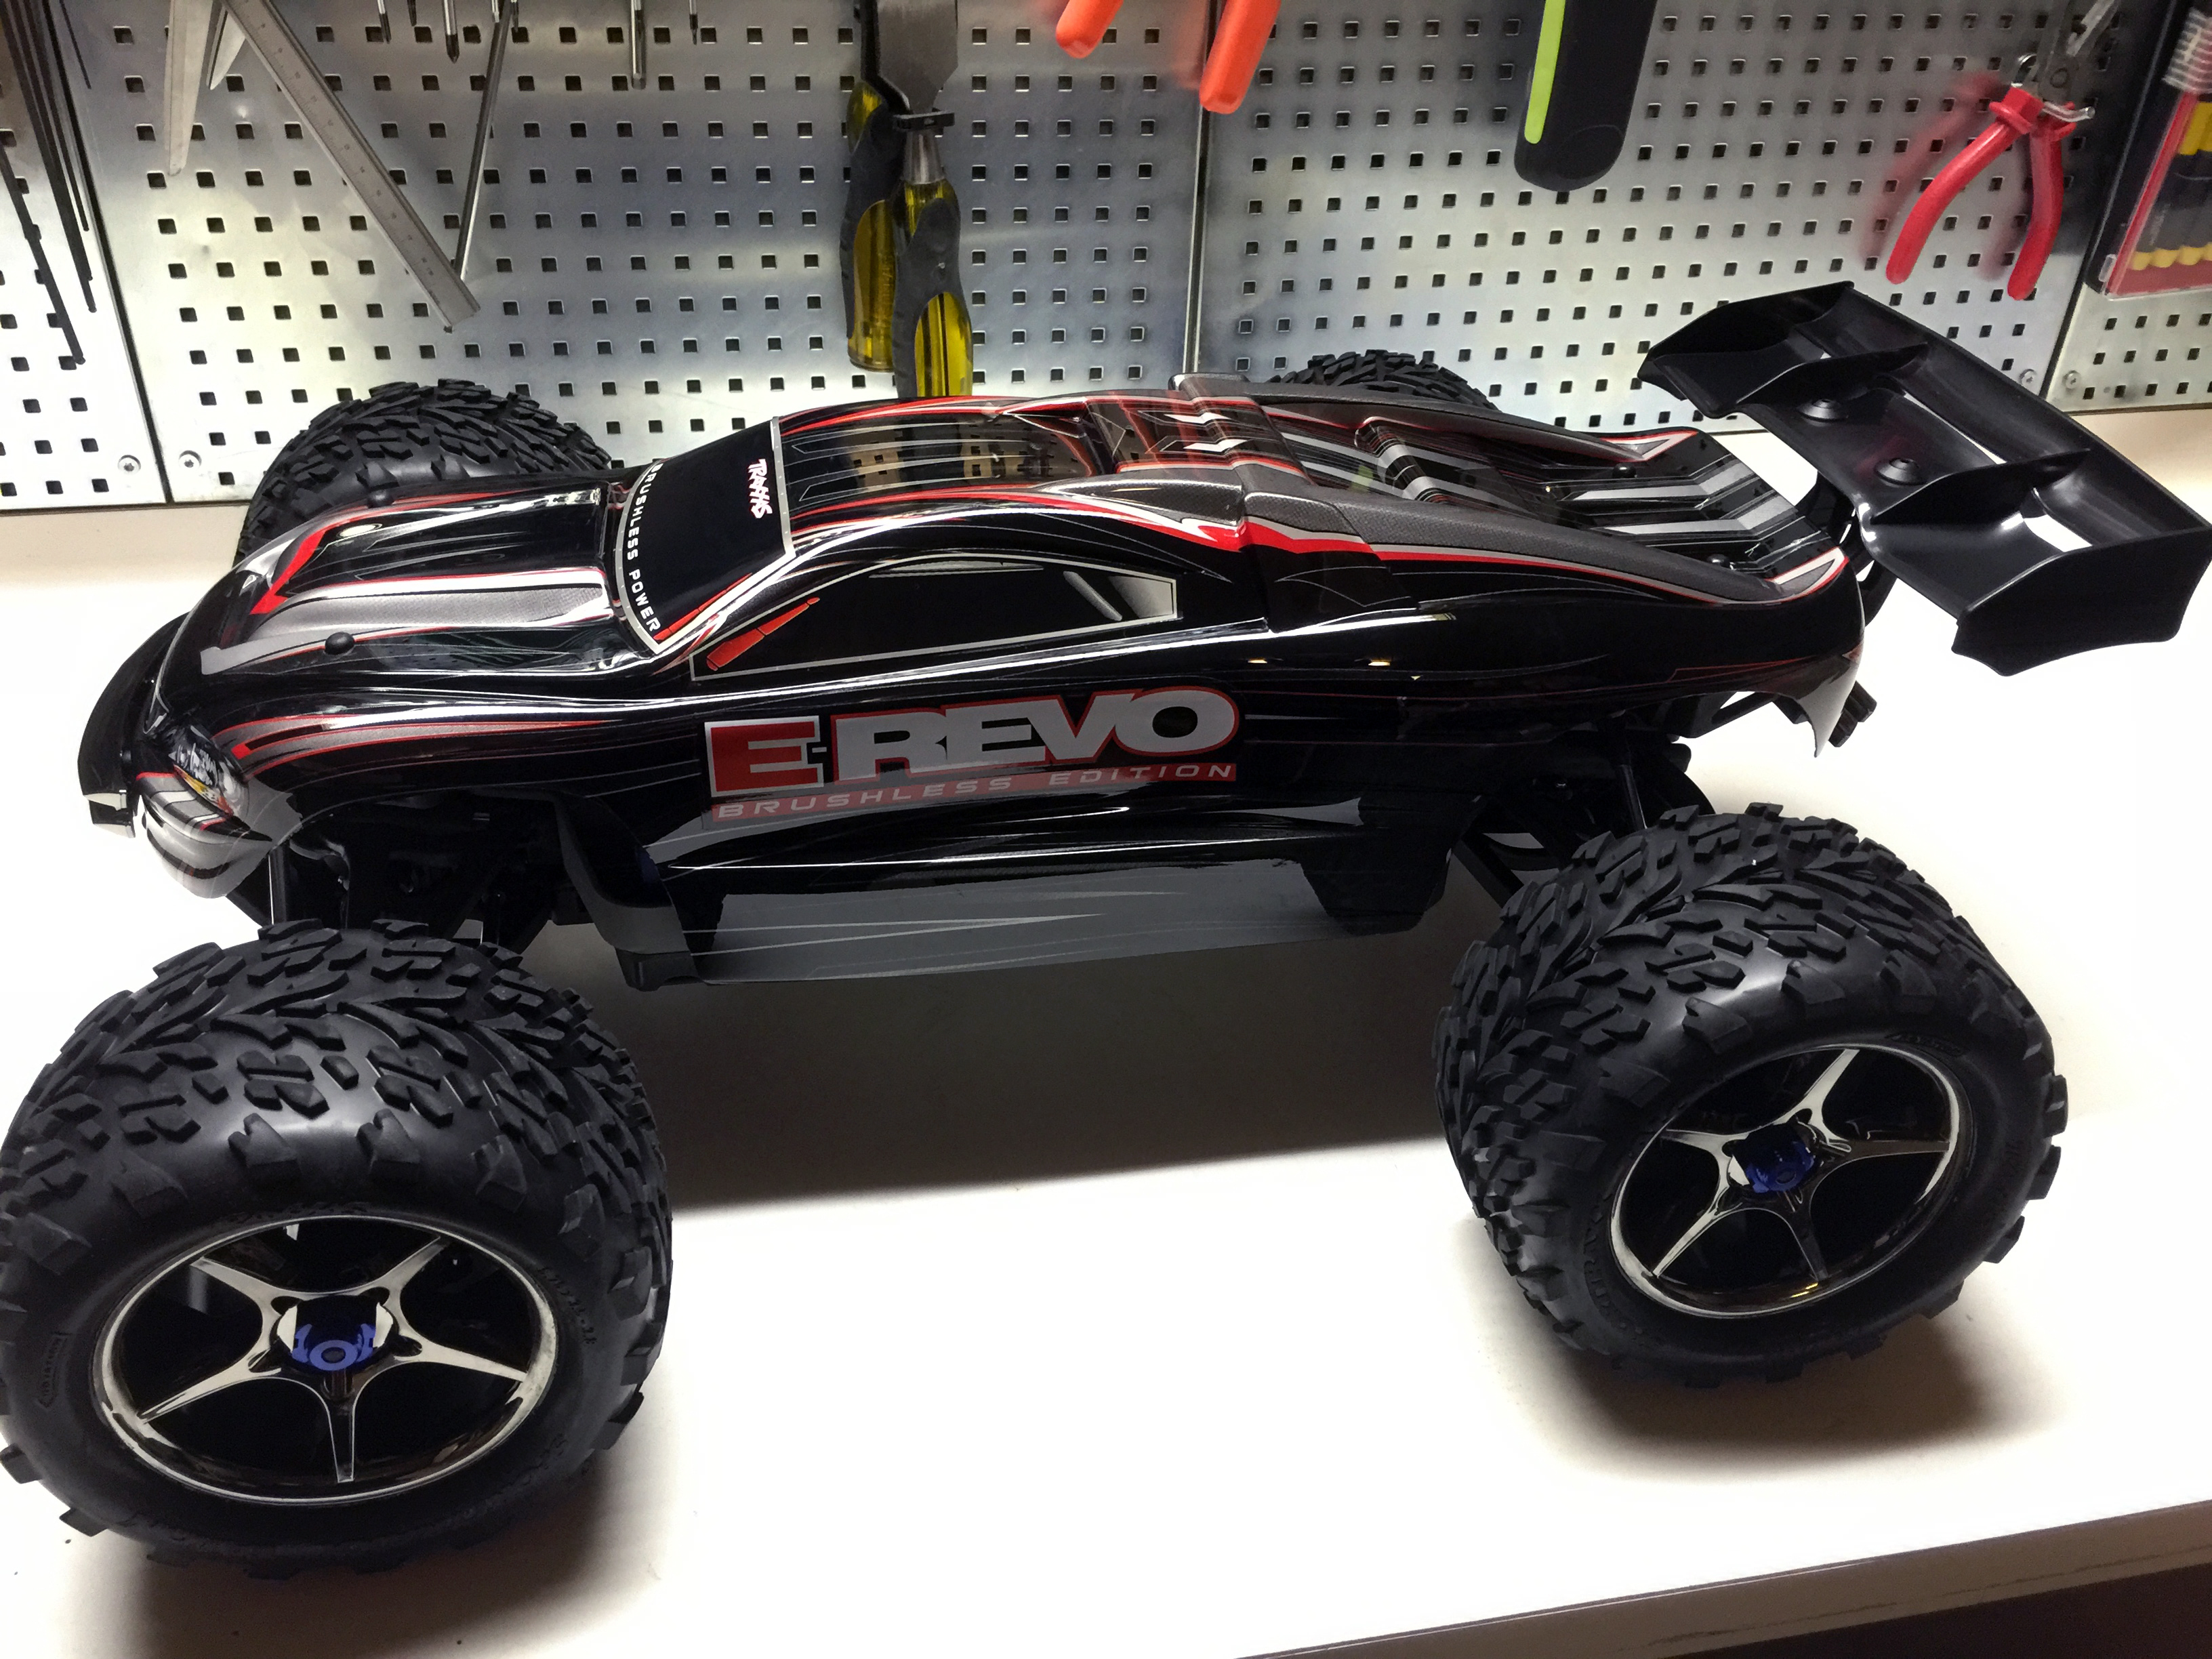 Traxxas E Revo Brushless 4WD Monster Truck